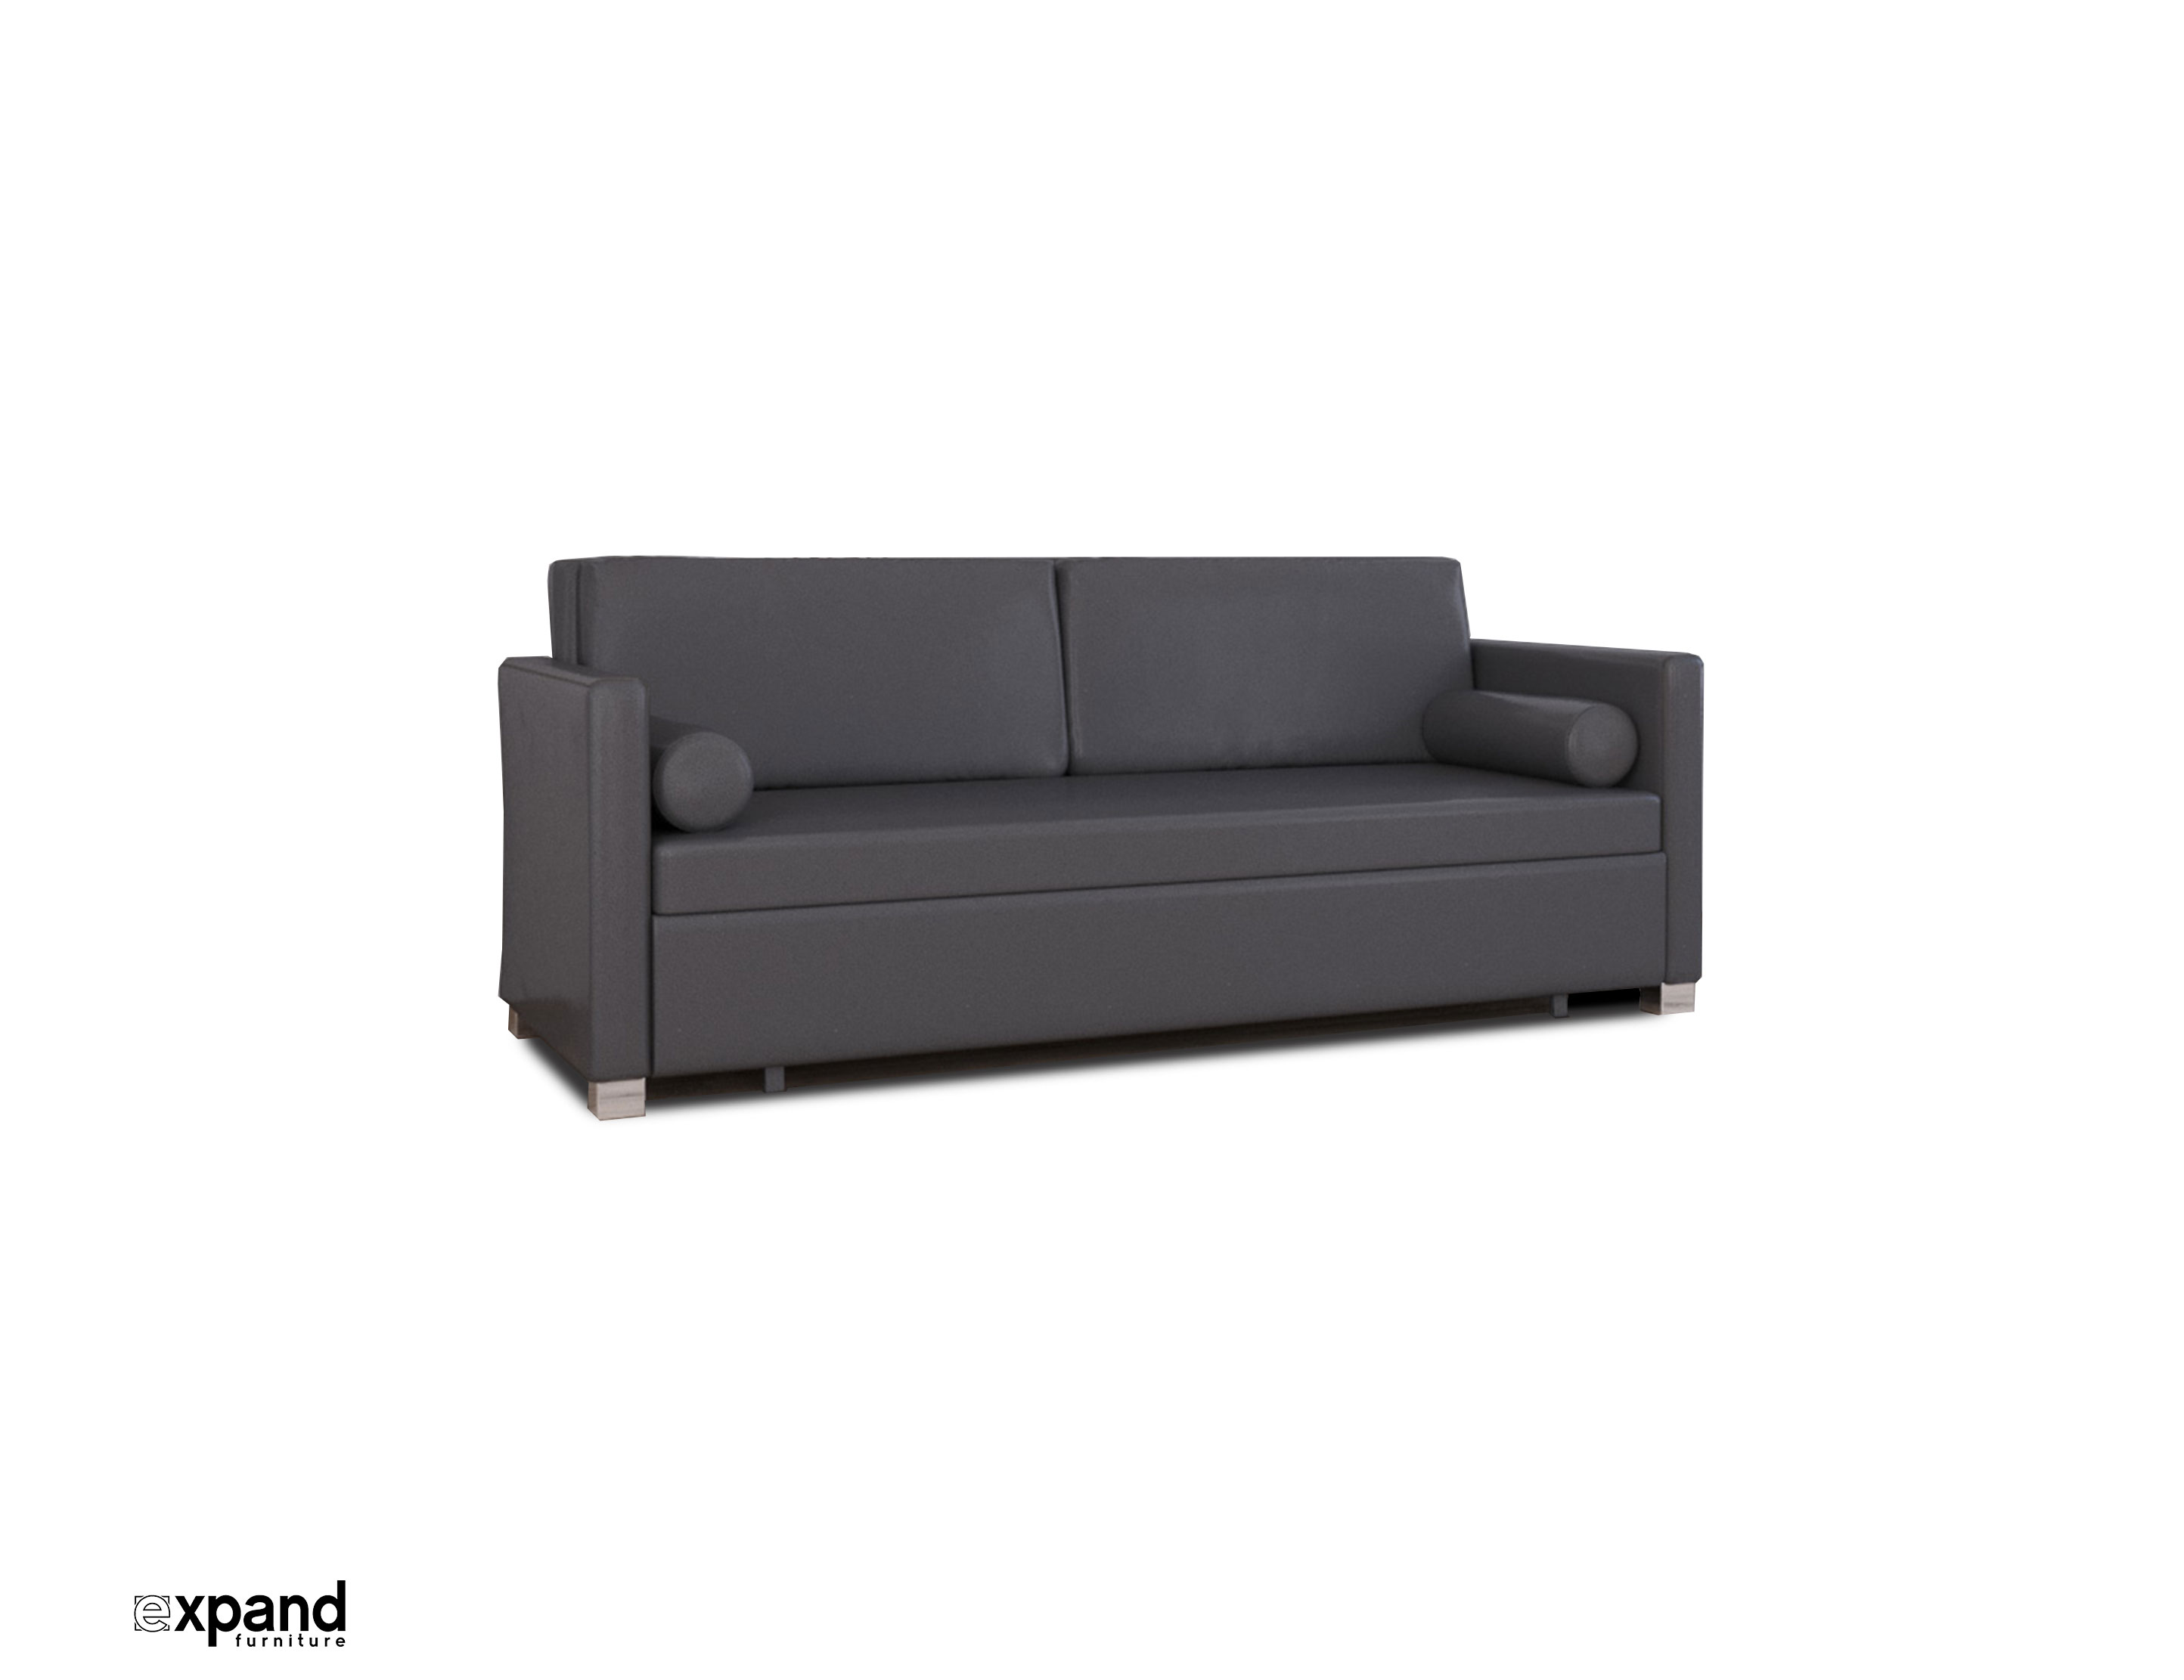 Harmony Sofa Bed Queen American Leather Eco 1 895 00 695